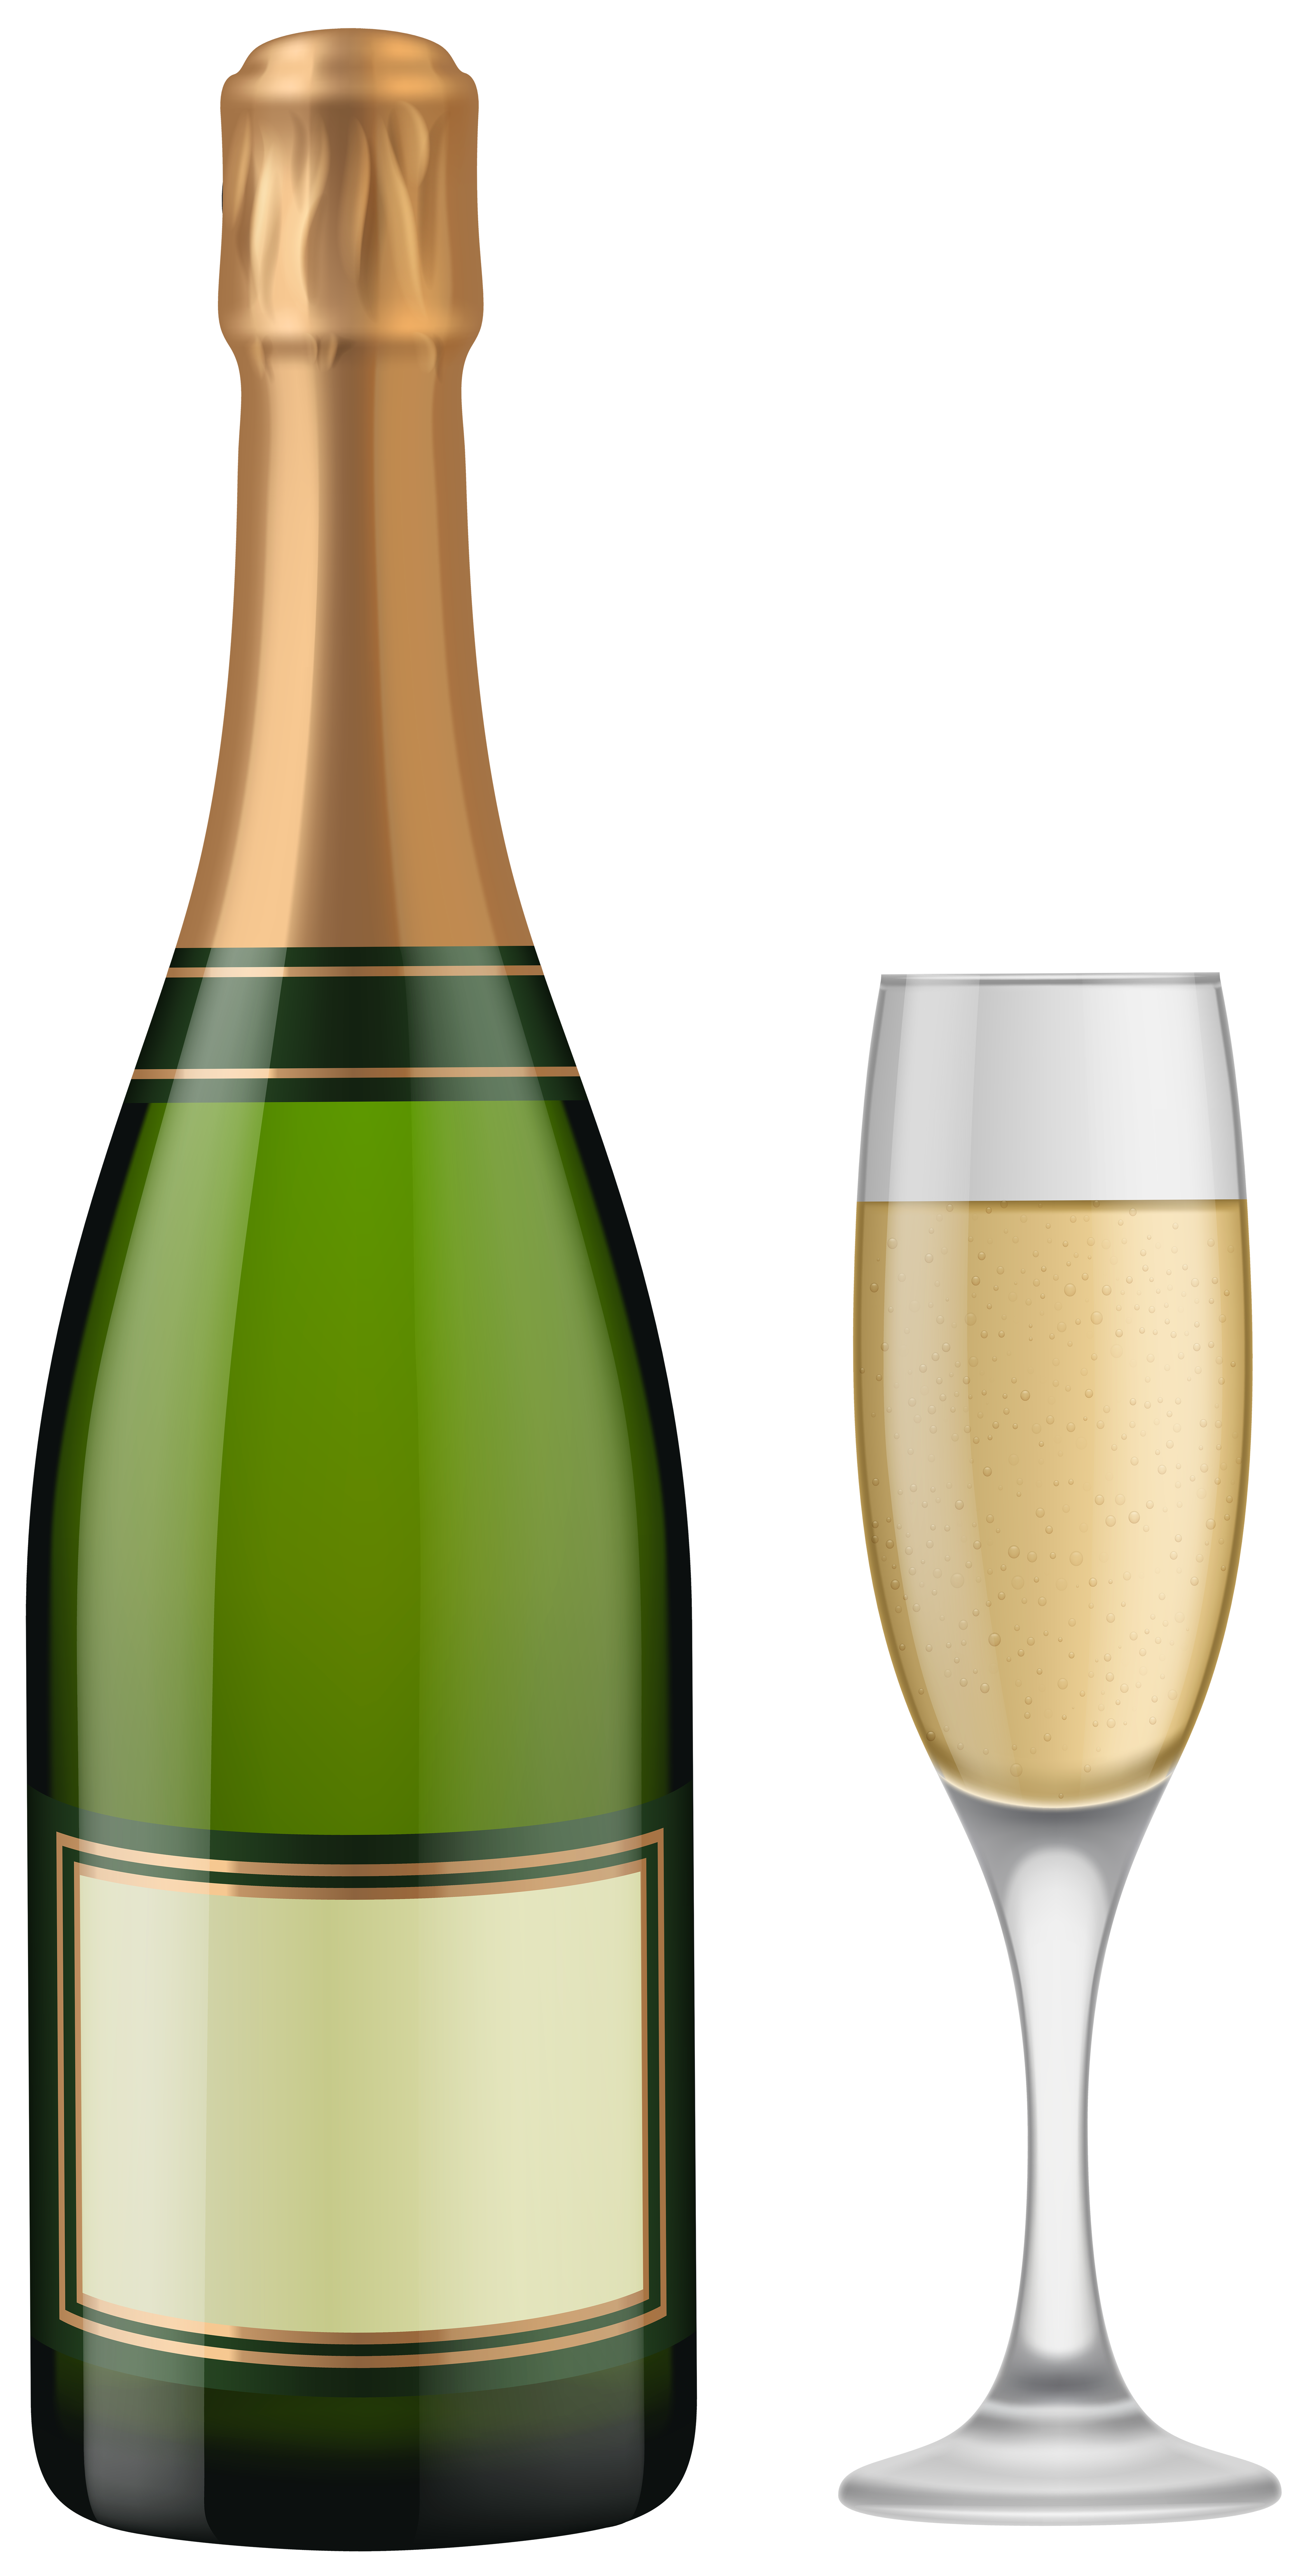 Champagne bottle and glasses clipart graphic royalty free stock Champagne clipart png clipart images gallery for free download ... graphic royalty free stock